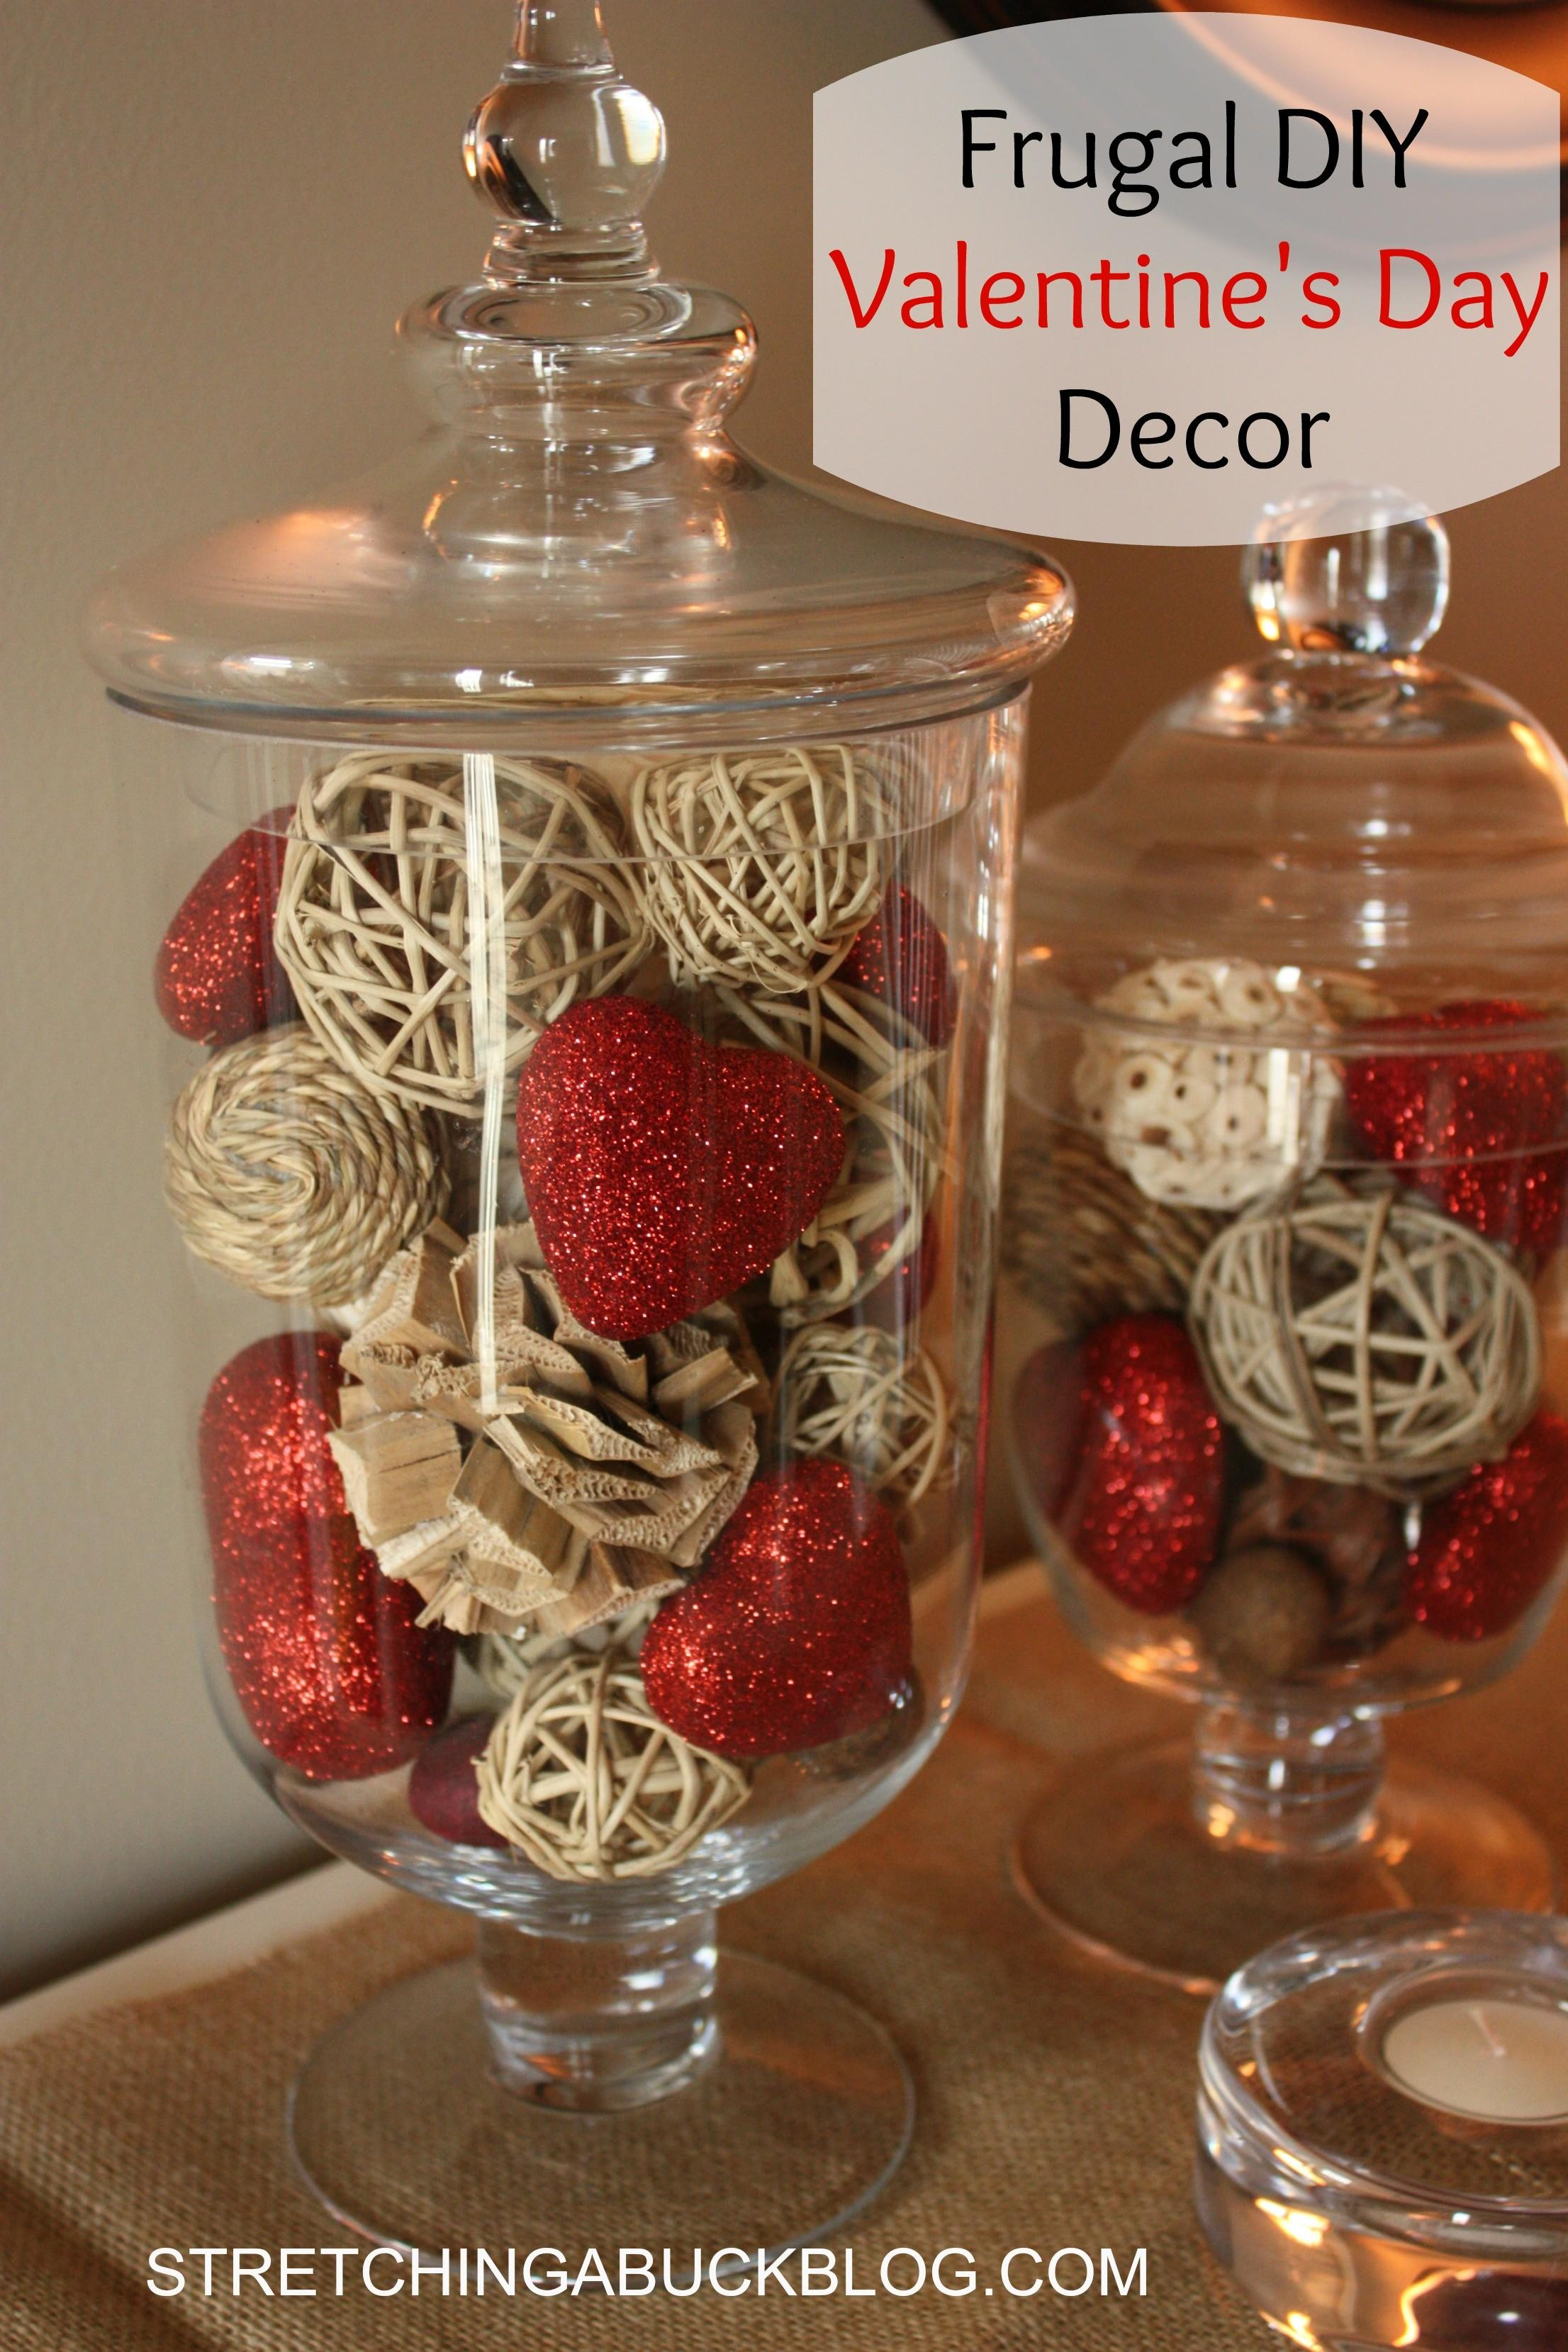 Frugal Diy Valentine Day Decor Ideas Stretching